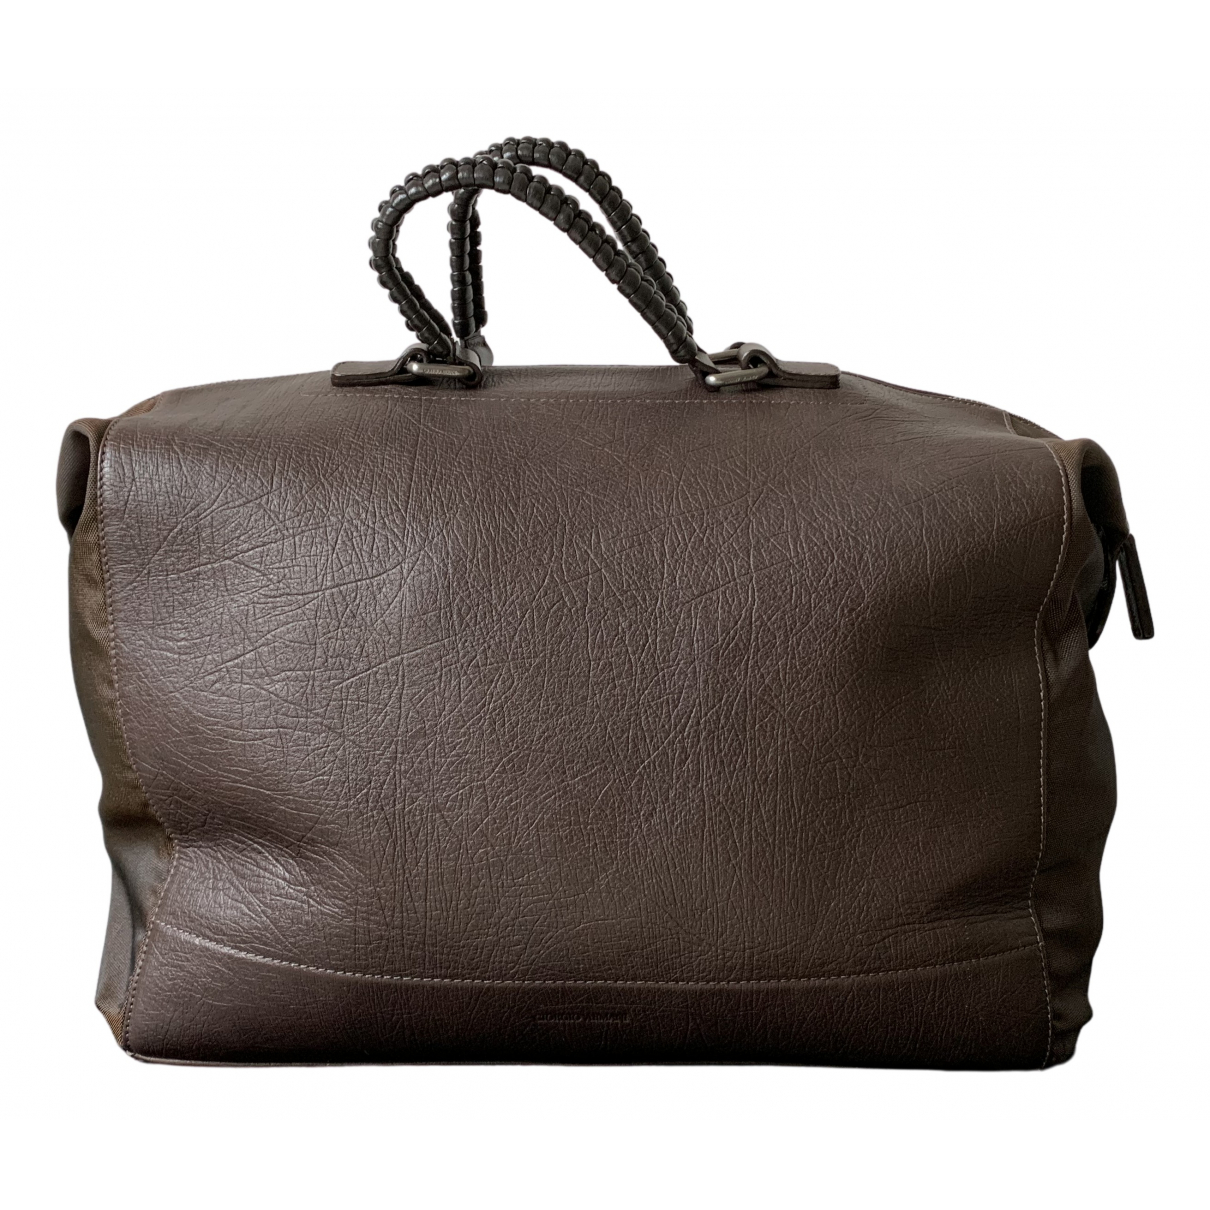 Giorgio Armani N Brown Leather bag for Men N